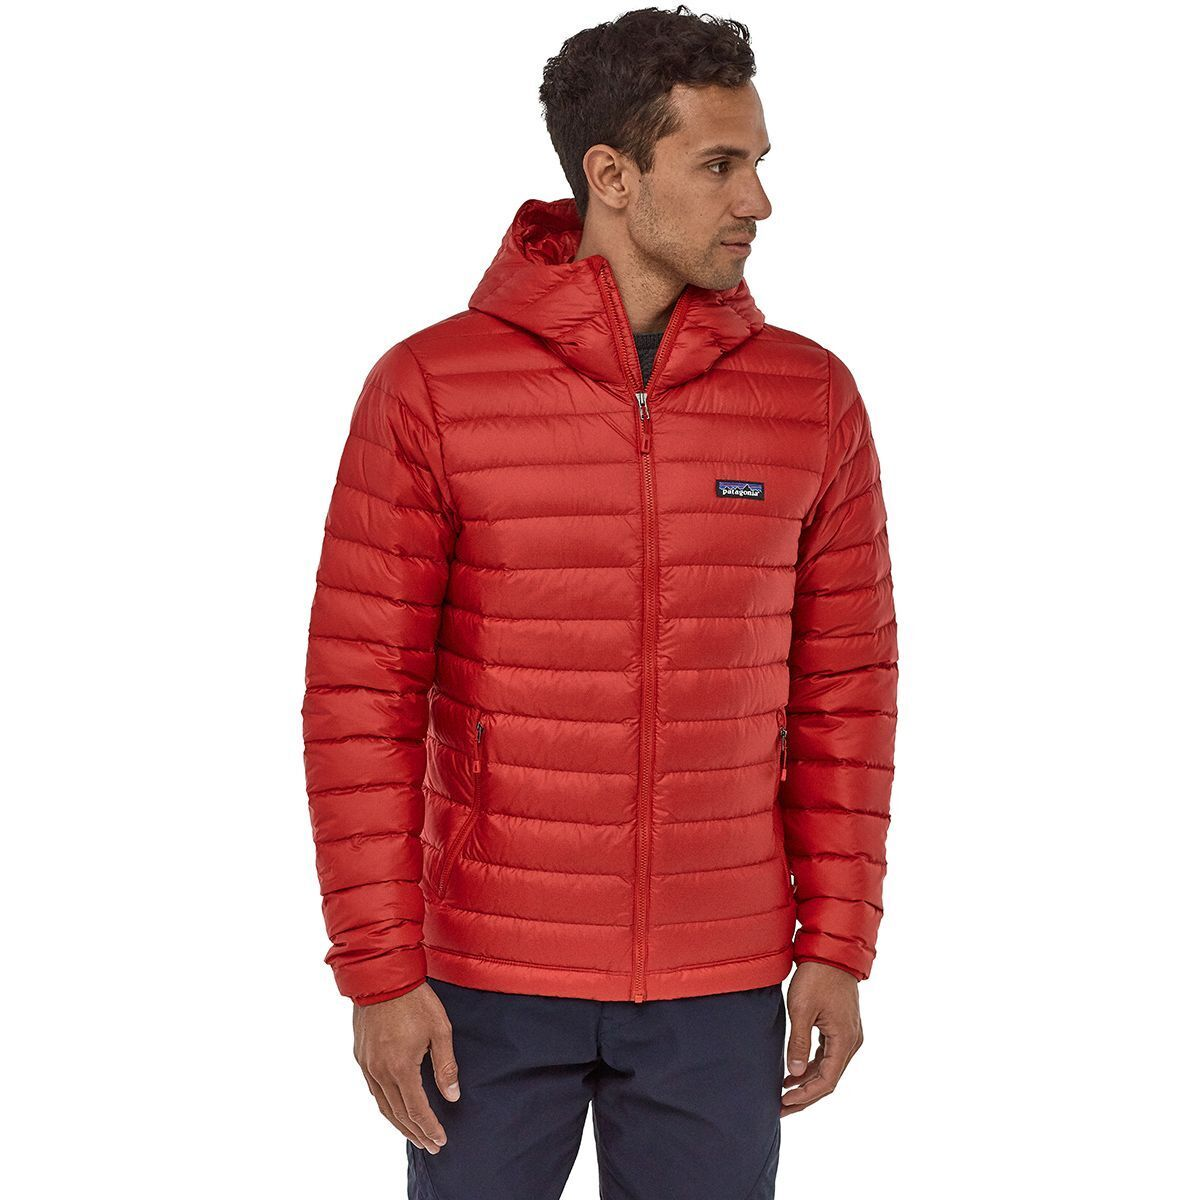 Patagonia Down Sweater Hooded Jacket Men's |